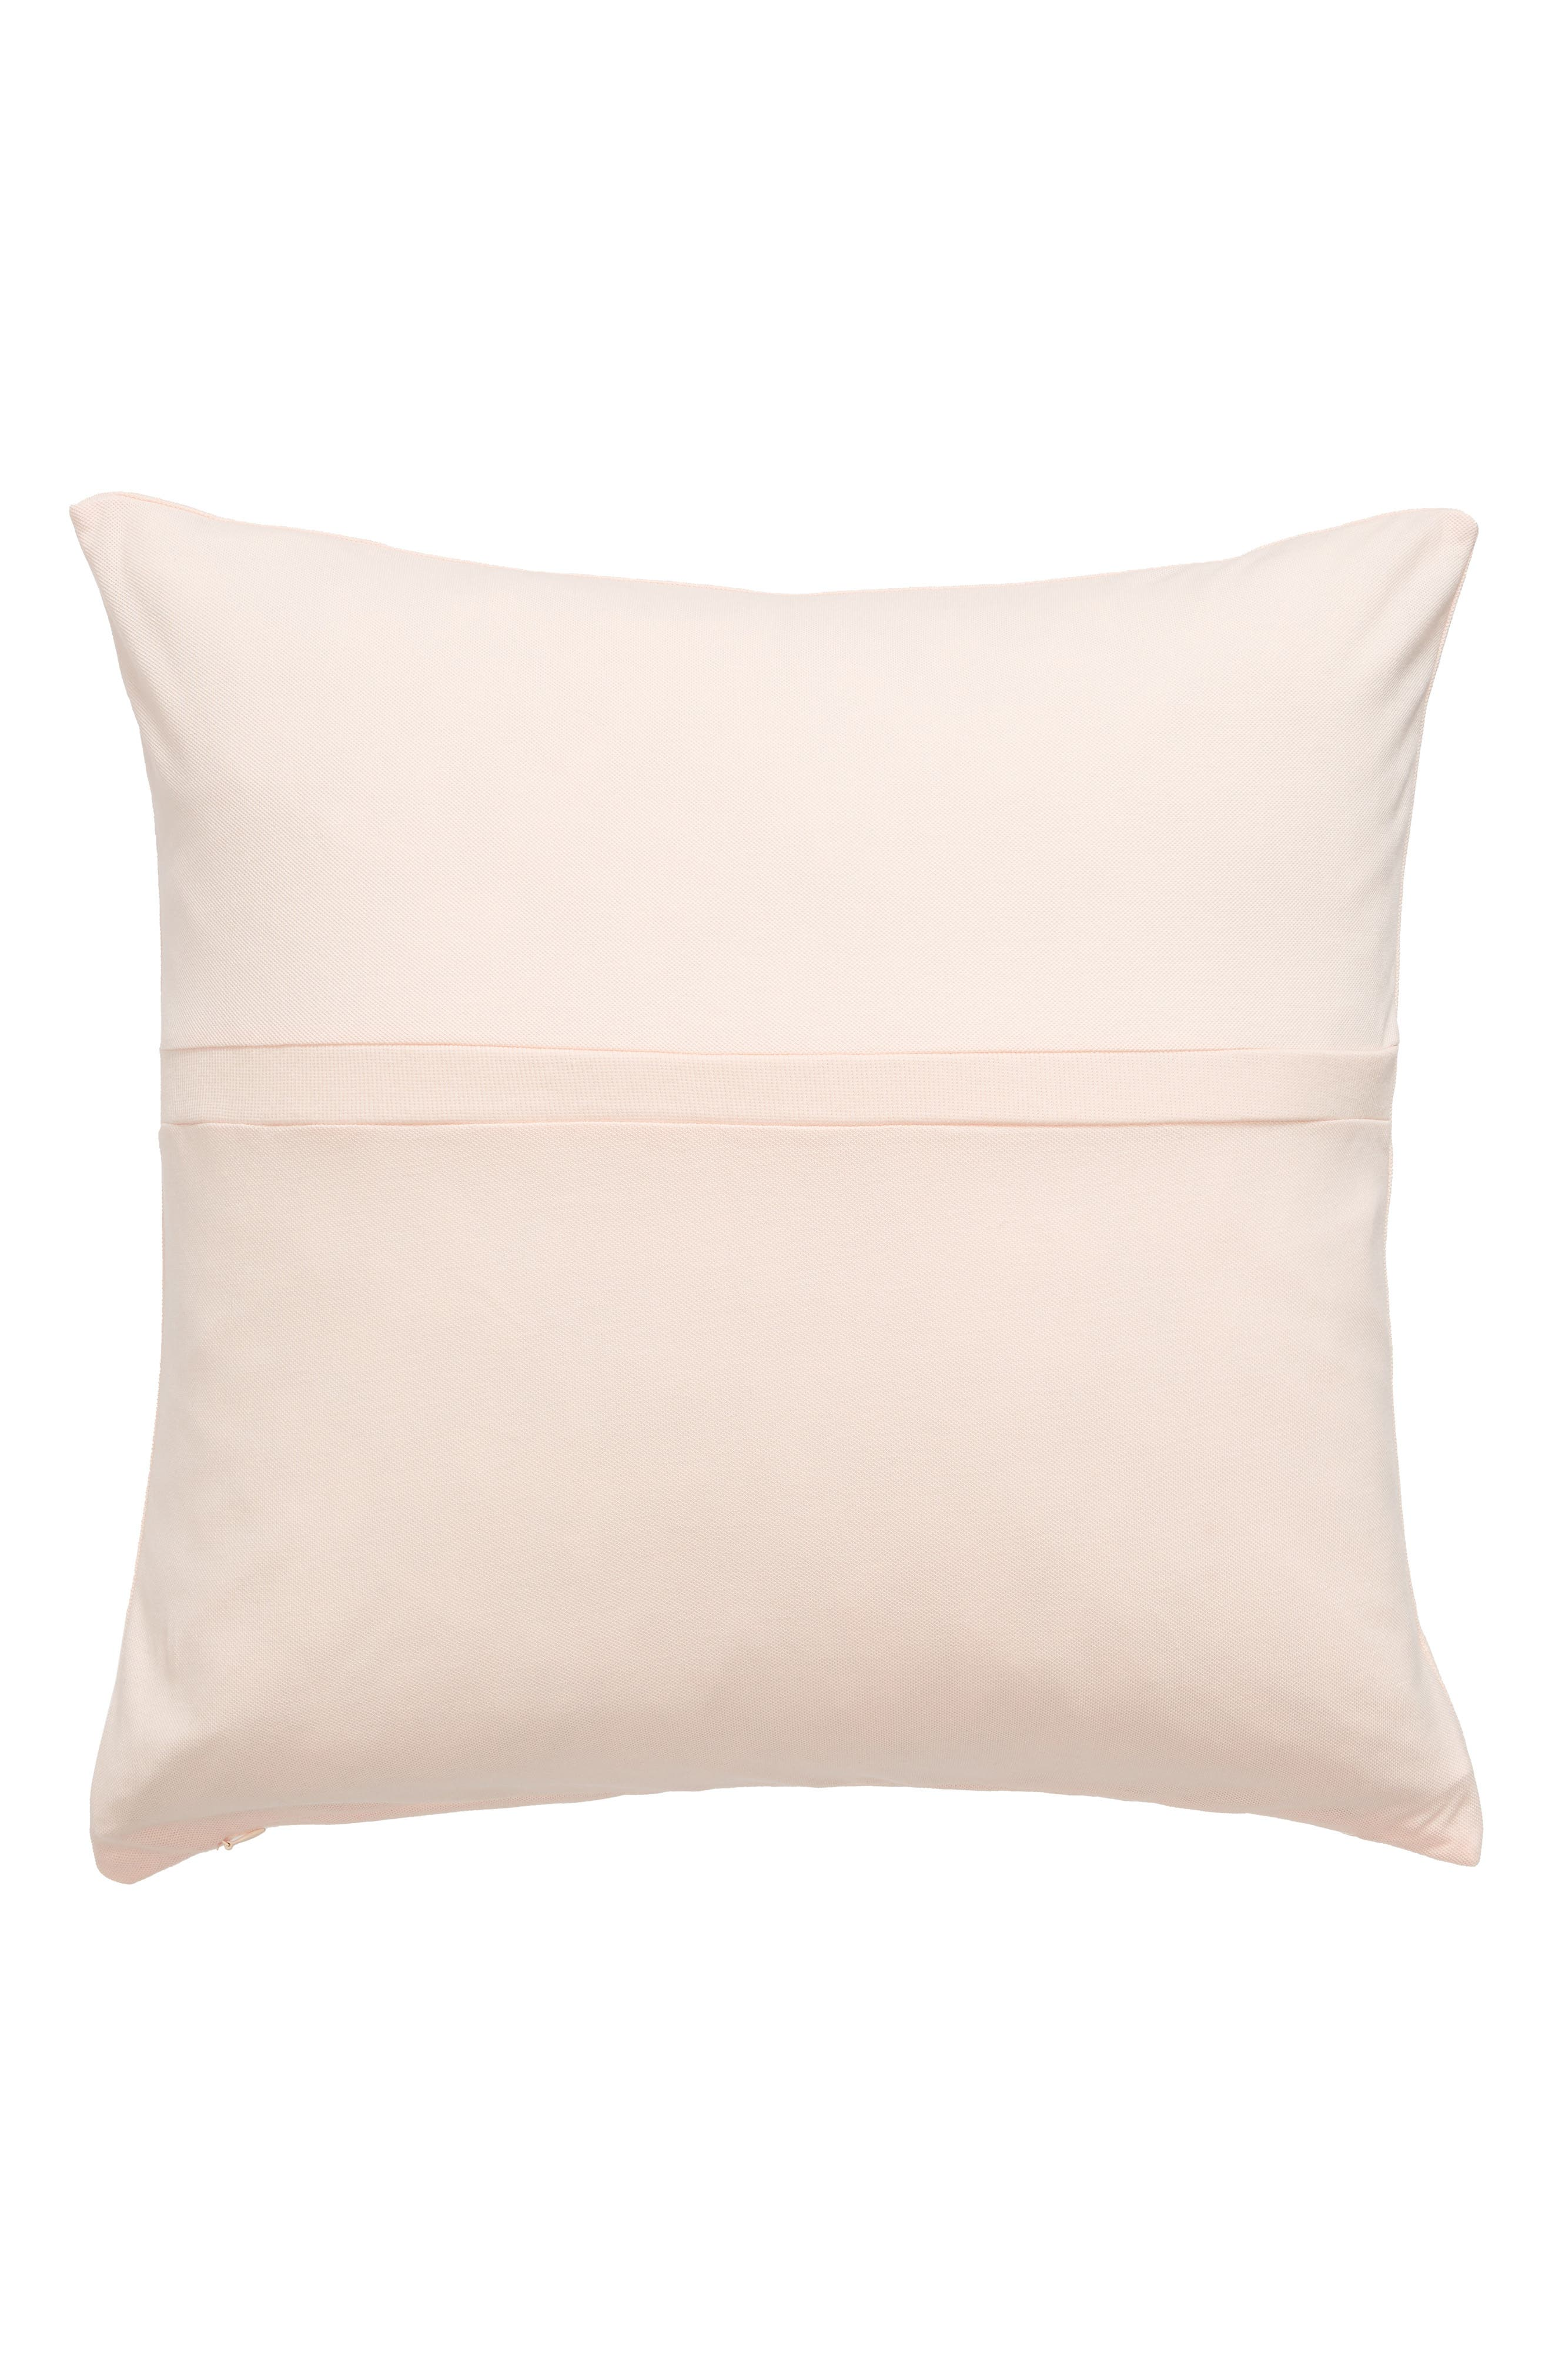 Home Jacob Accent Pillow,                             Alternate thumbnail 2, color,                             Pink